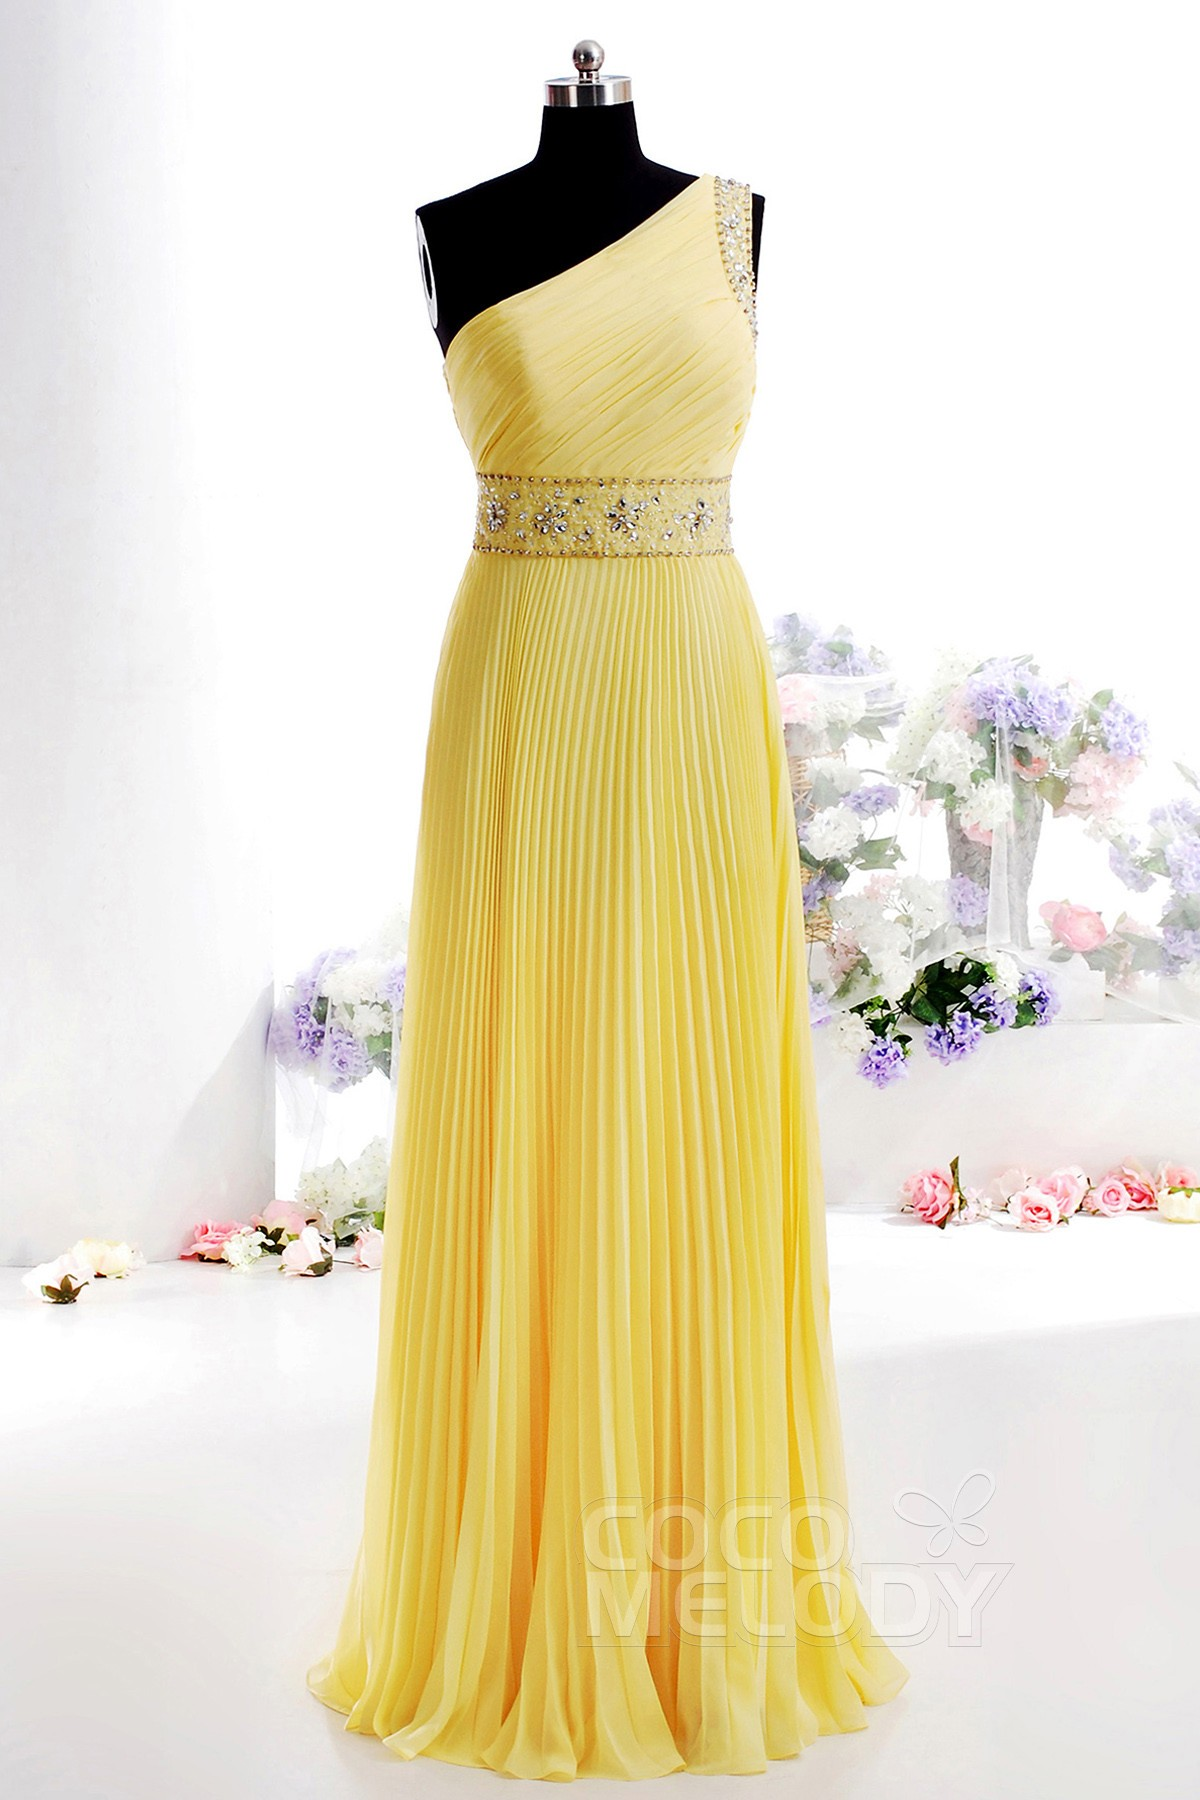 Simple Sheath-Column One shoulder Floor Length Chiffon Bridesmaid Dress with Pleating and Beading COSF14005